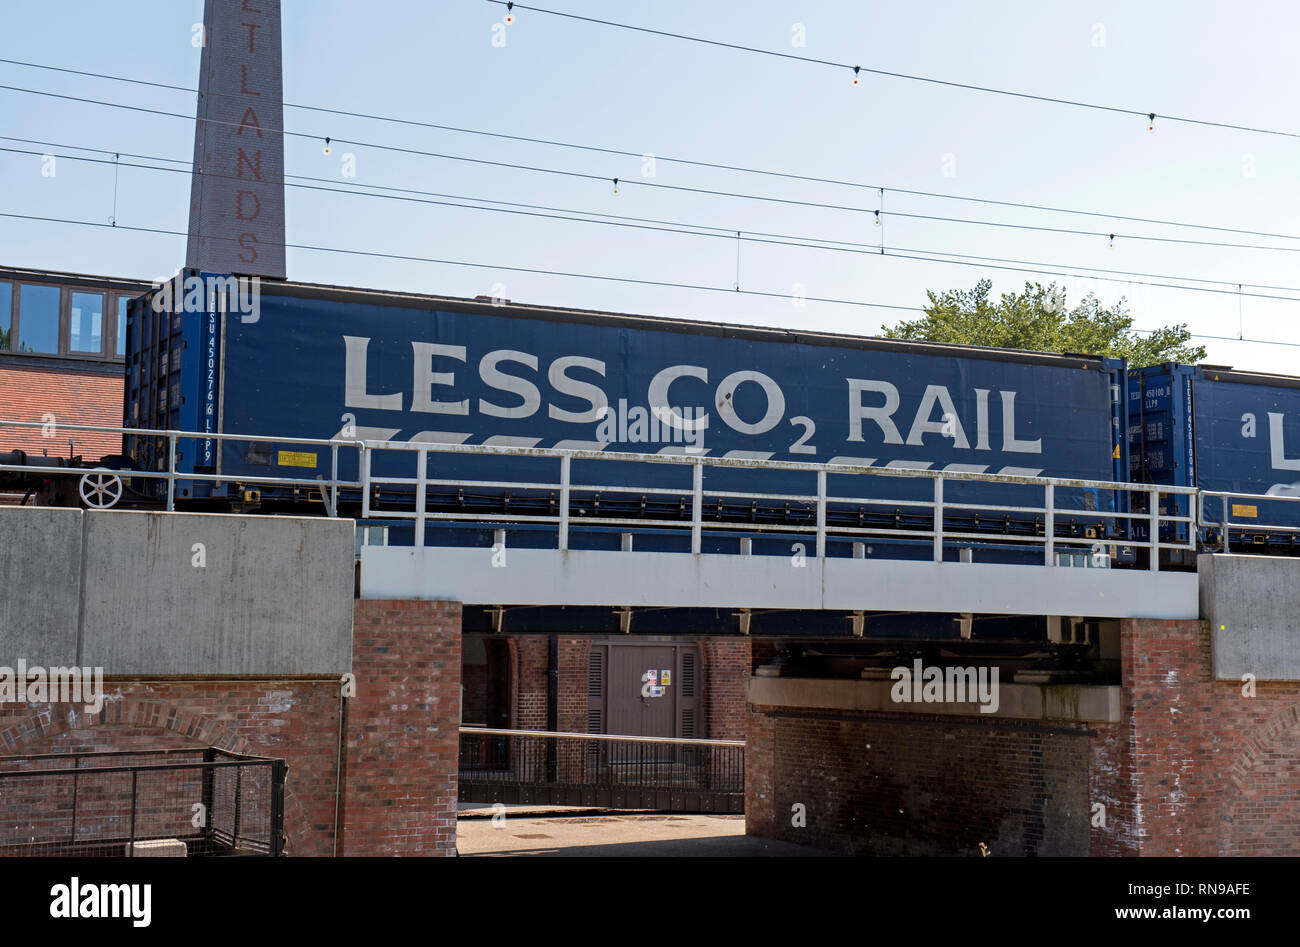 Less C02 Rail printed on the side of a train fright carrage passing through Walthamstow Wetland. - Stock Image